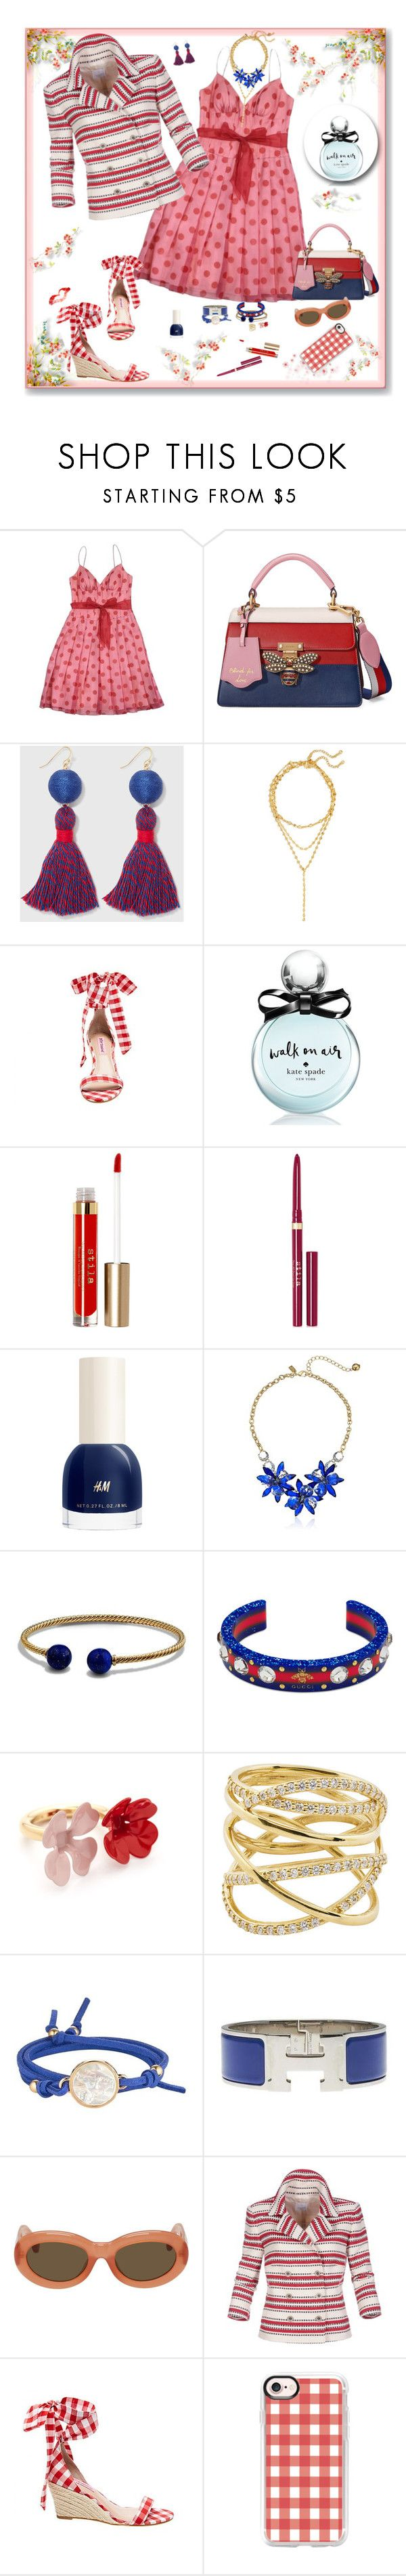 """Pattern Mixing"" by deborah-518 ❤ liked on Polyvore featuring Kay Unger New York, Gucci, Draper James, BaubleBar, Betsey Johnson, Kate Spade, Stila, H&M, David Yurman and Marni"